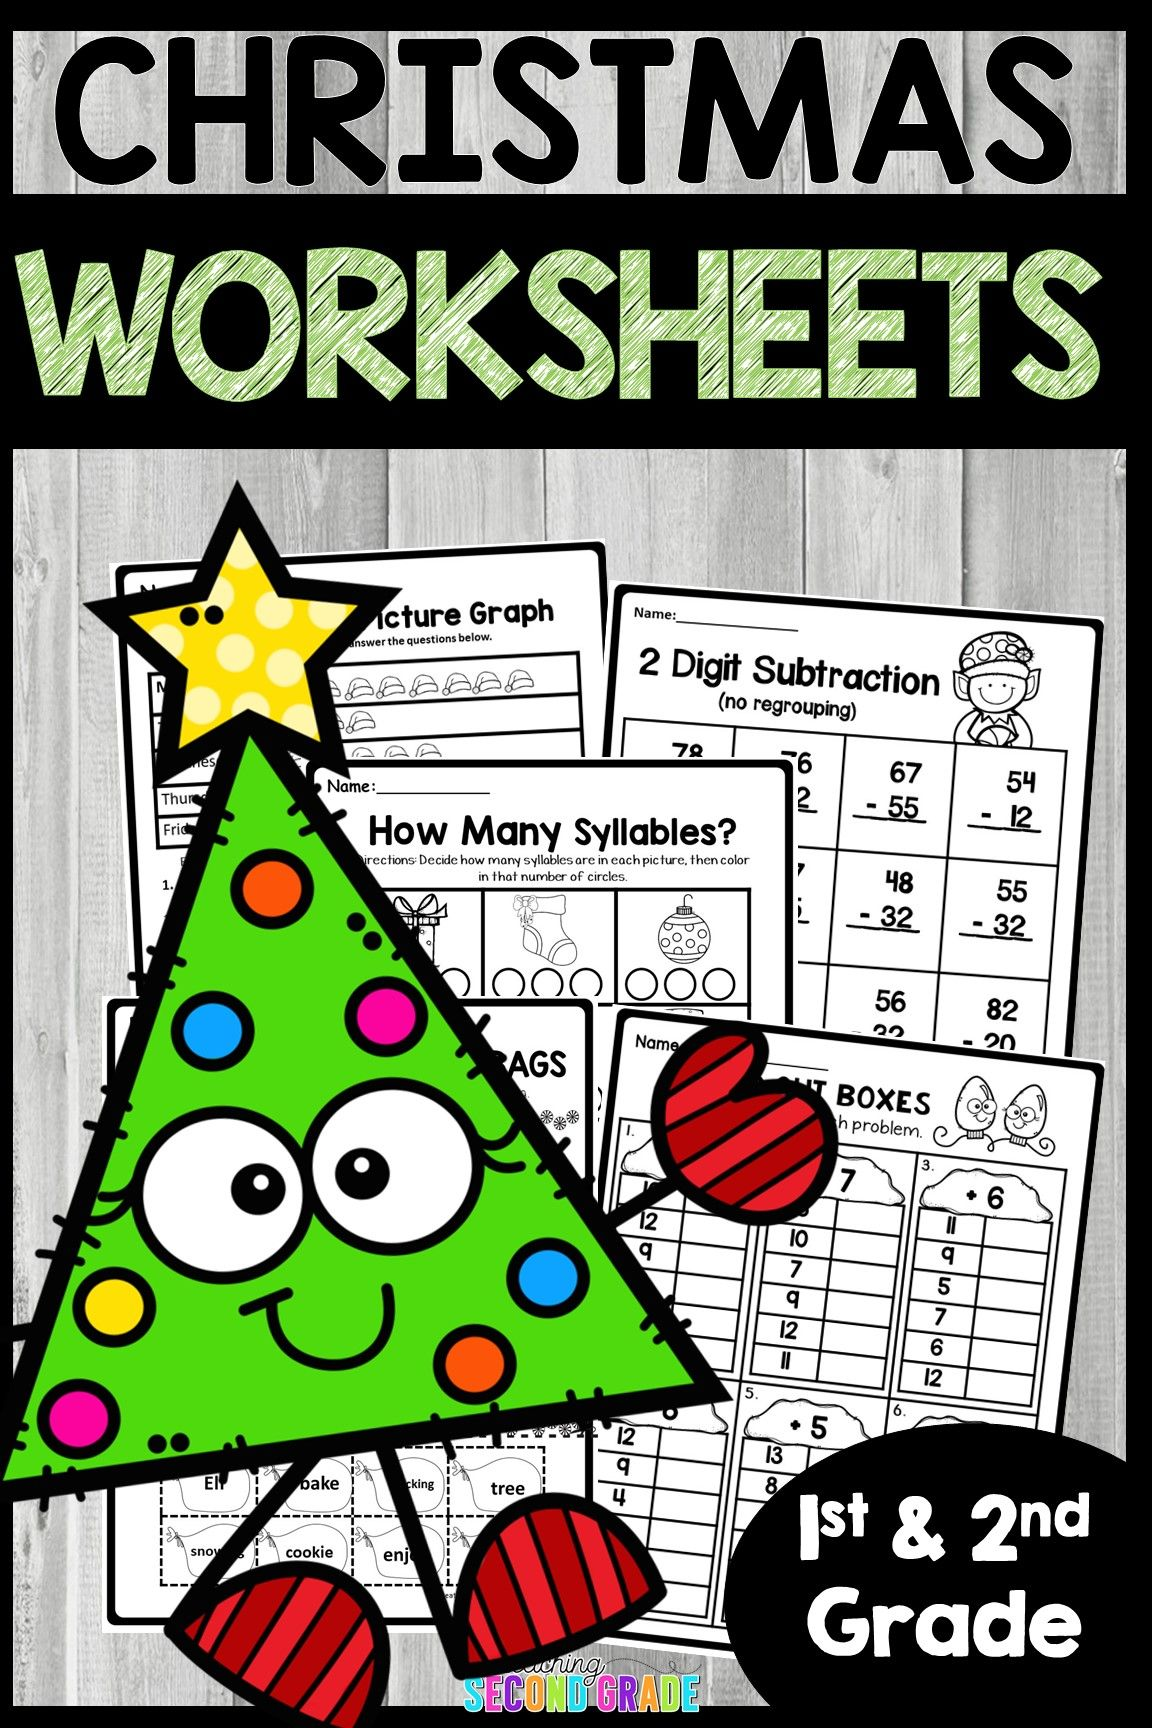 12 Best Noun Worksheets For 3rd Grade Printable Images On